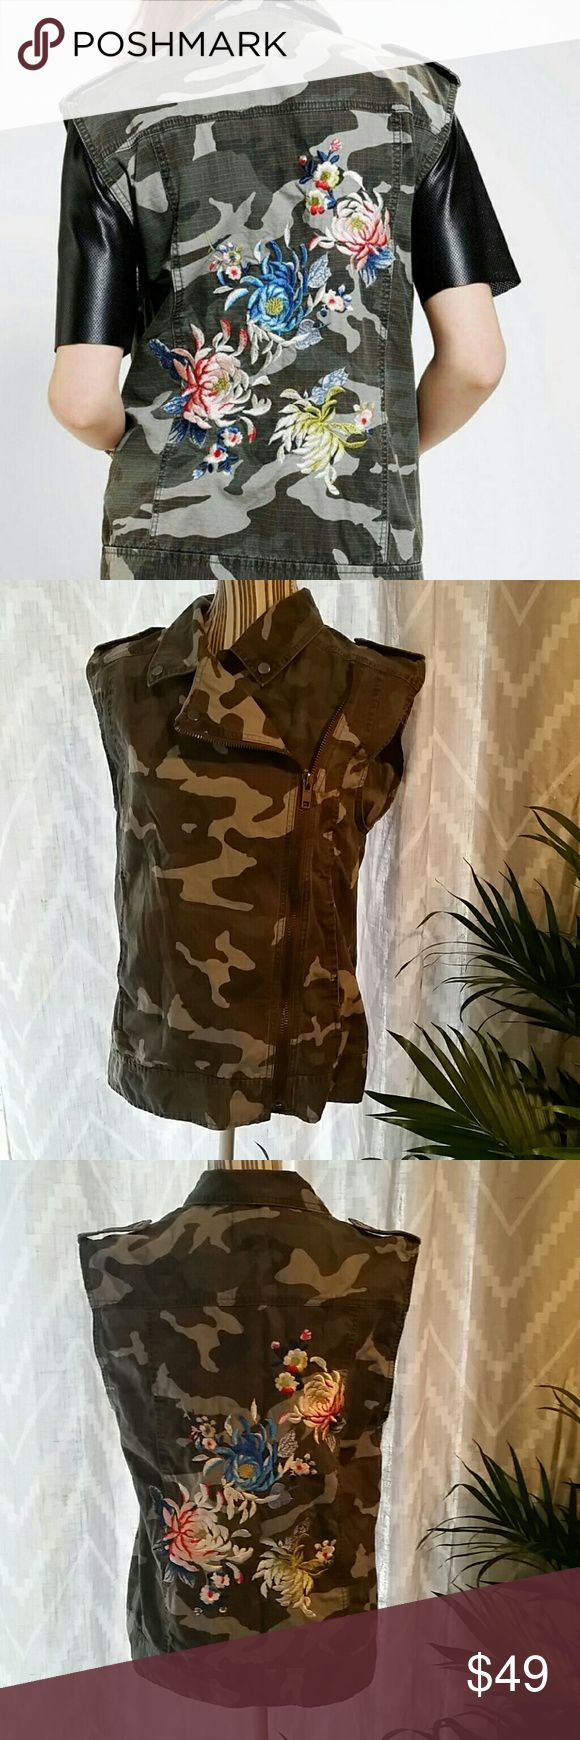 Urban Outfitters Silence Noise Camo Floral Vest S Size SMALL. Lightly used, excellent condition! Urban Outfitters Jackets & Coats Vests